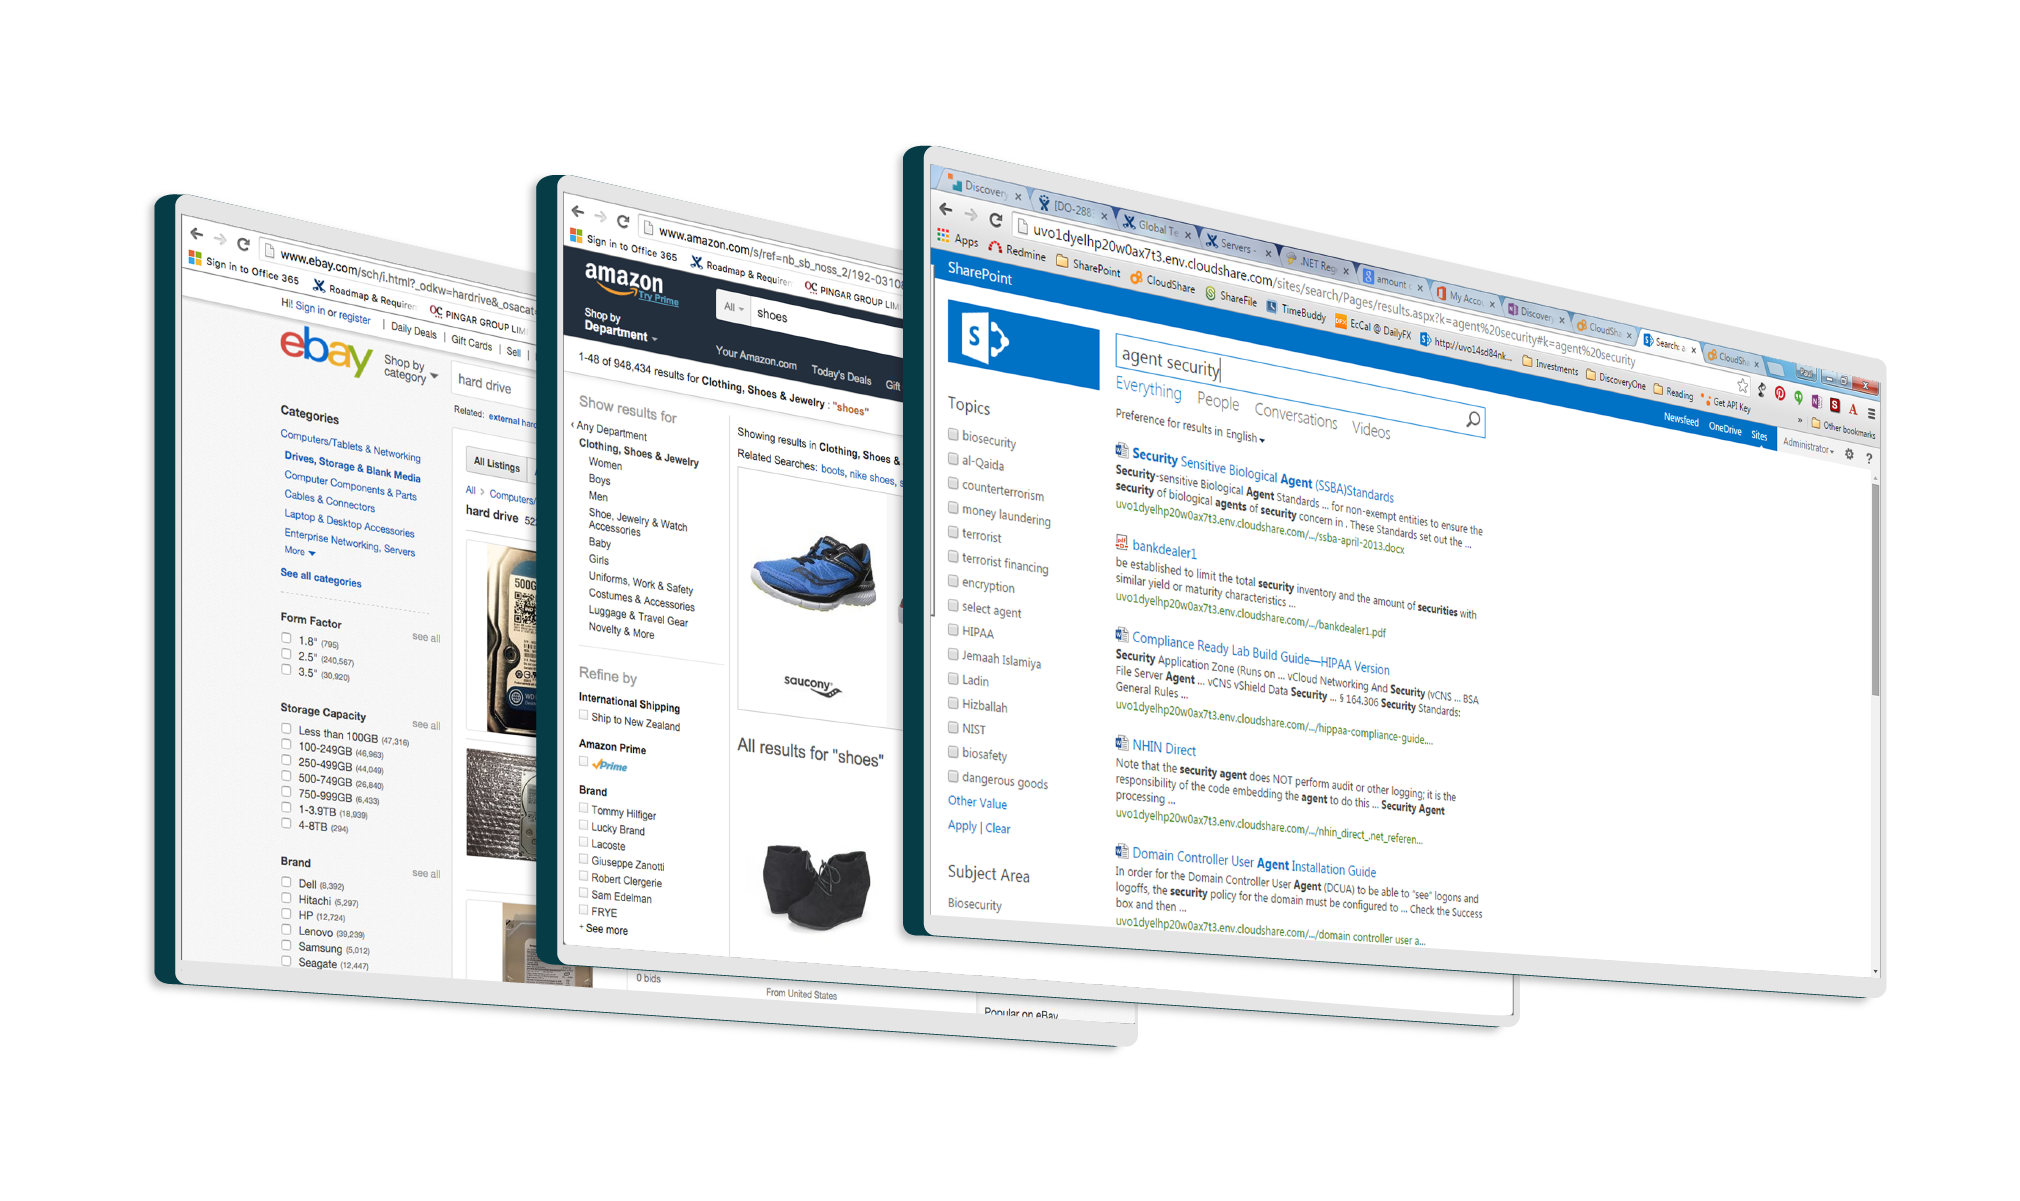 Faceted search is single most desirable feature to improve findability